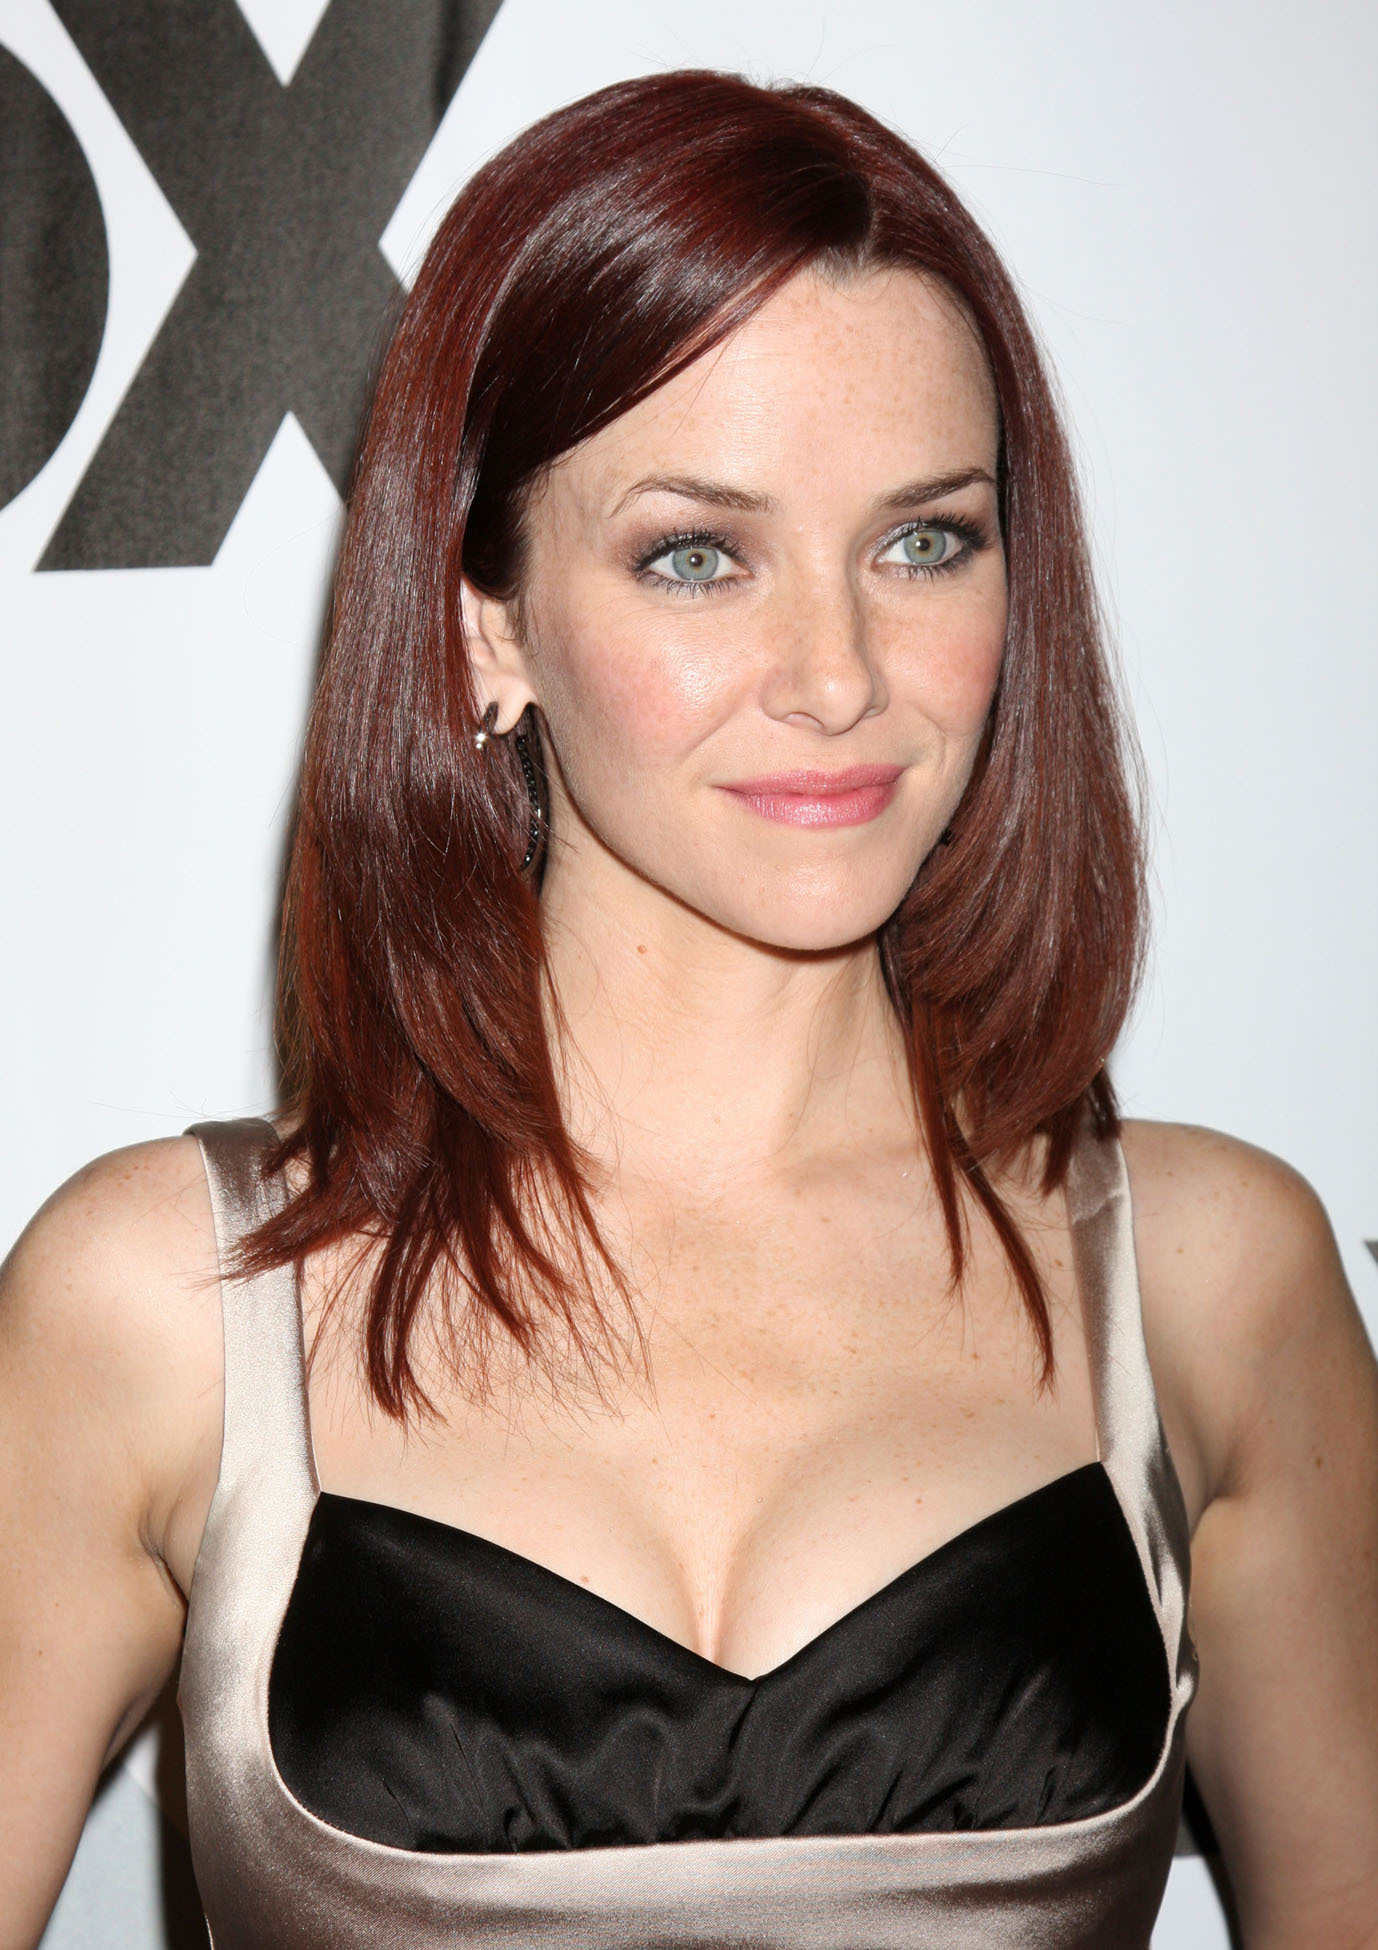 annie wersching - photo #26